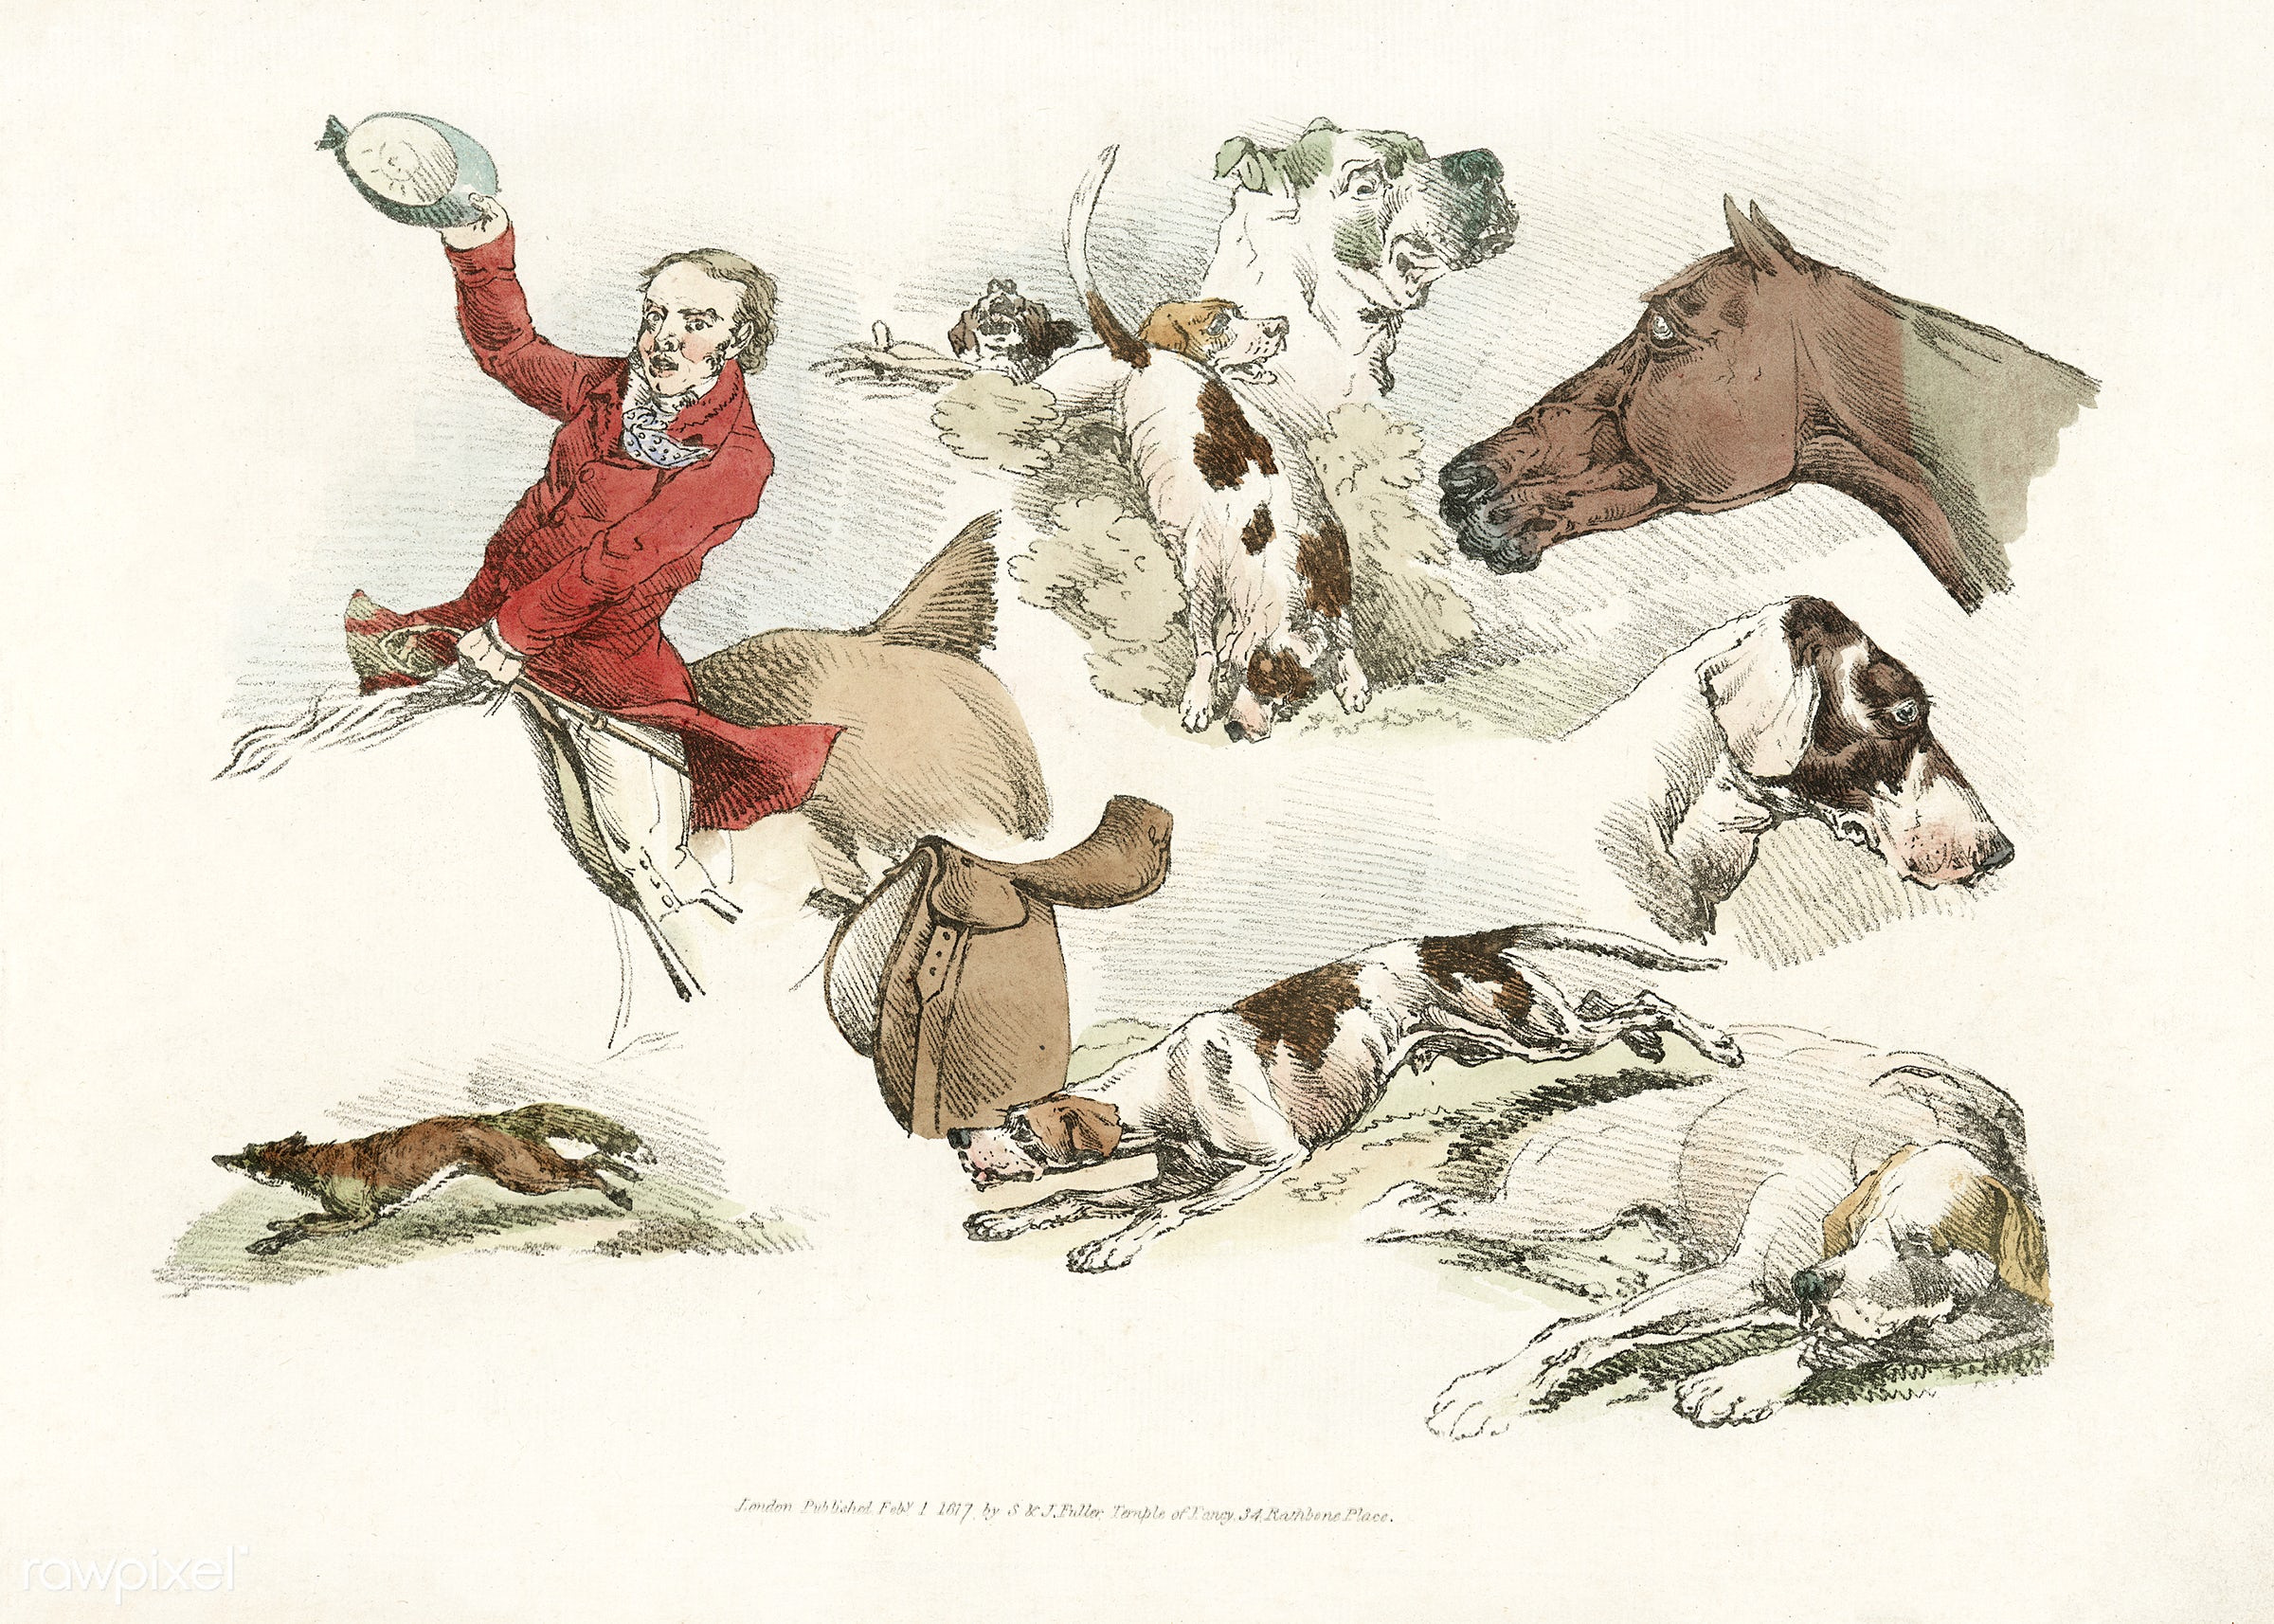 Vintage Illustration showing mounted hunter, running dogs and a fox from Sporting Sketches (1817-1818) by Henry Alken (1784-...